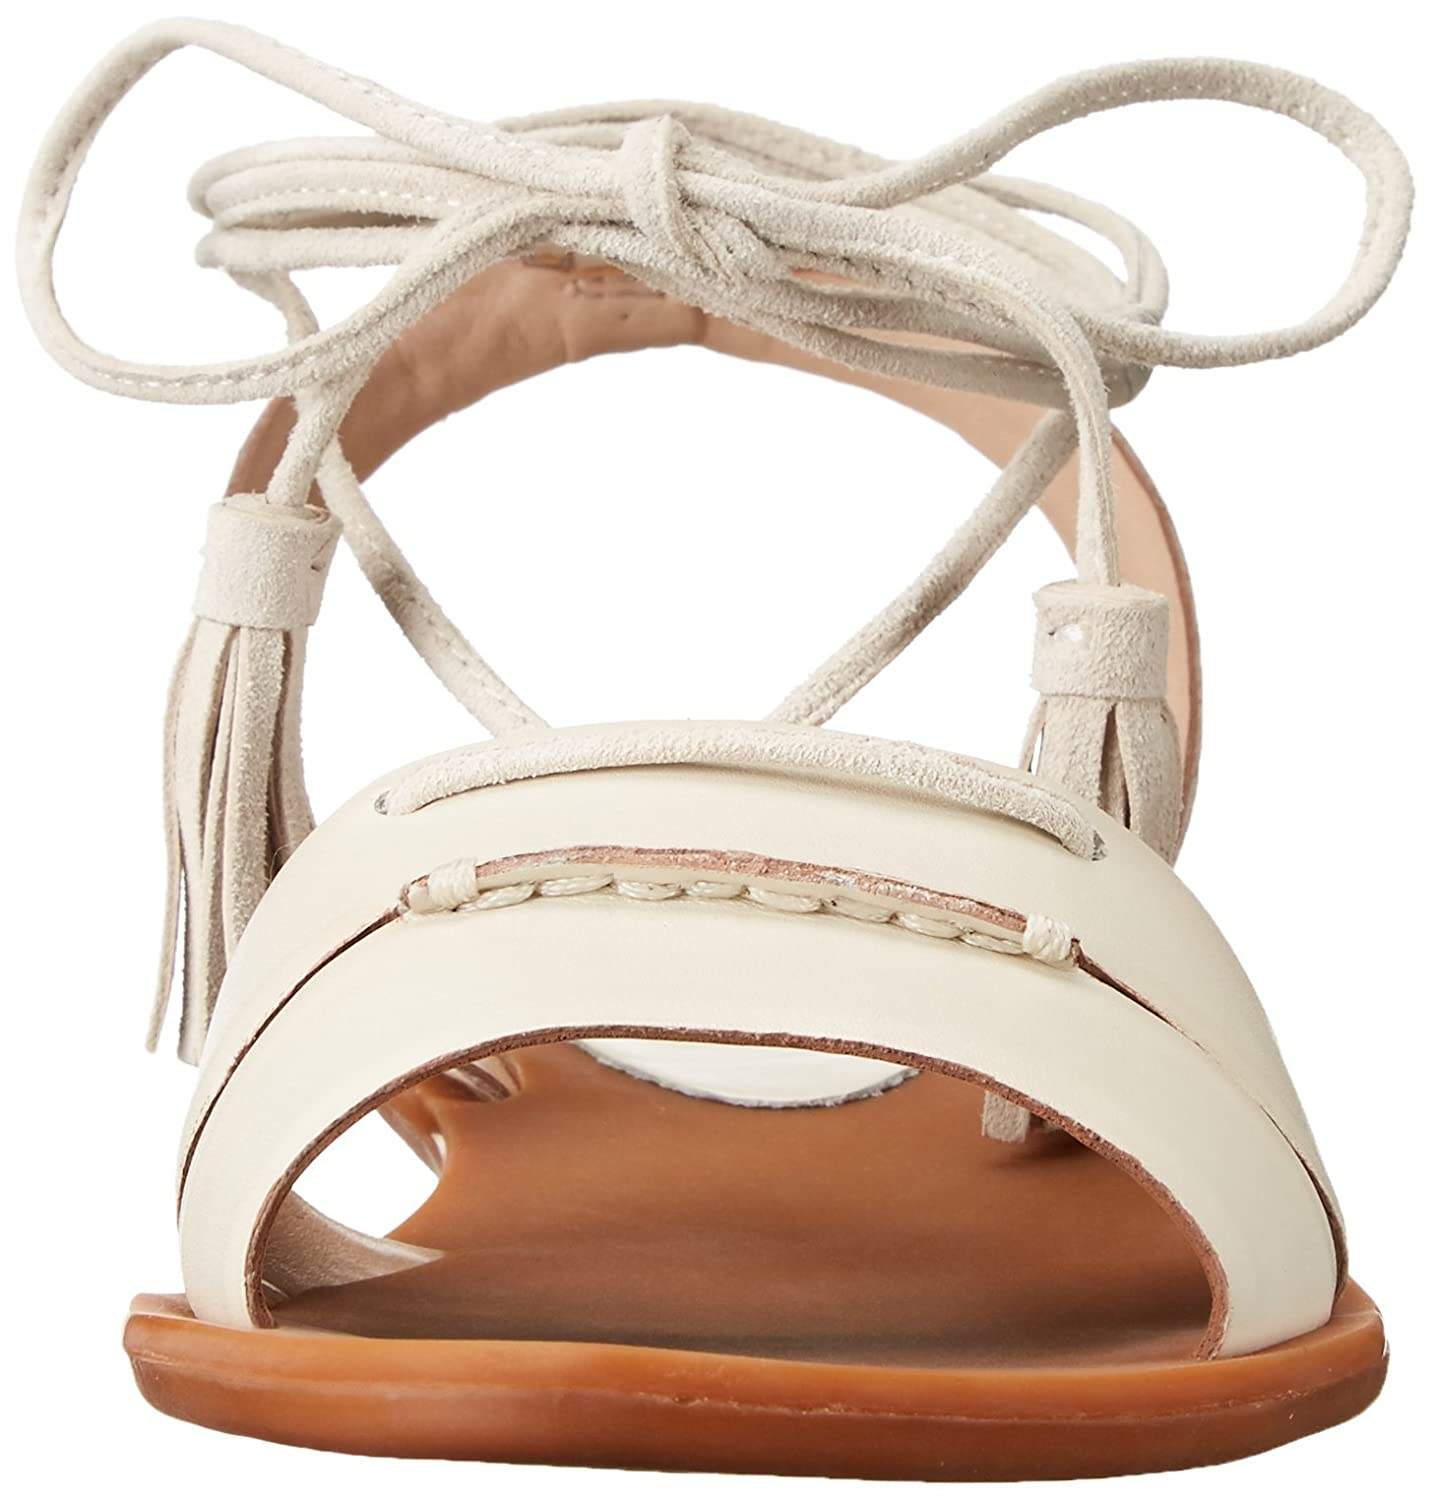 French Connection Womens Bobbie Flat Sandal